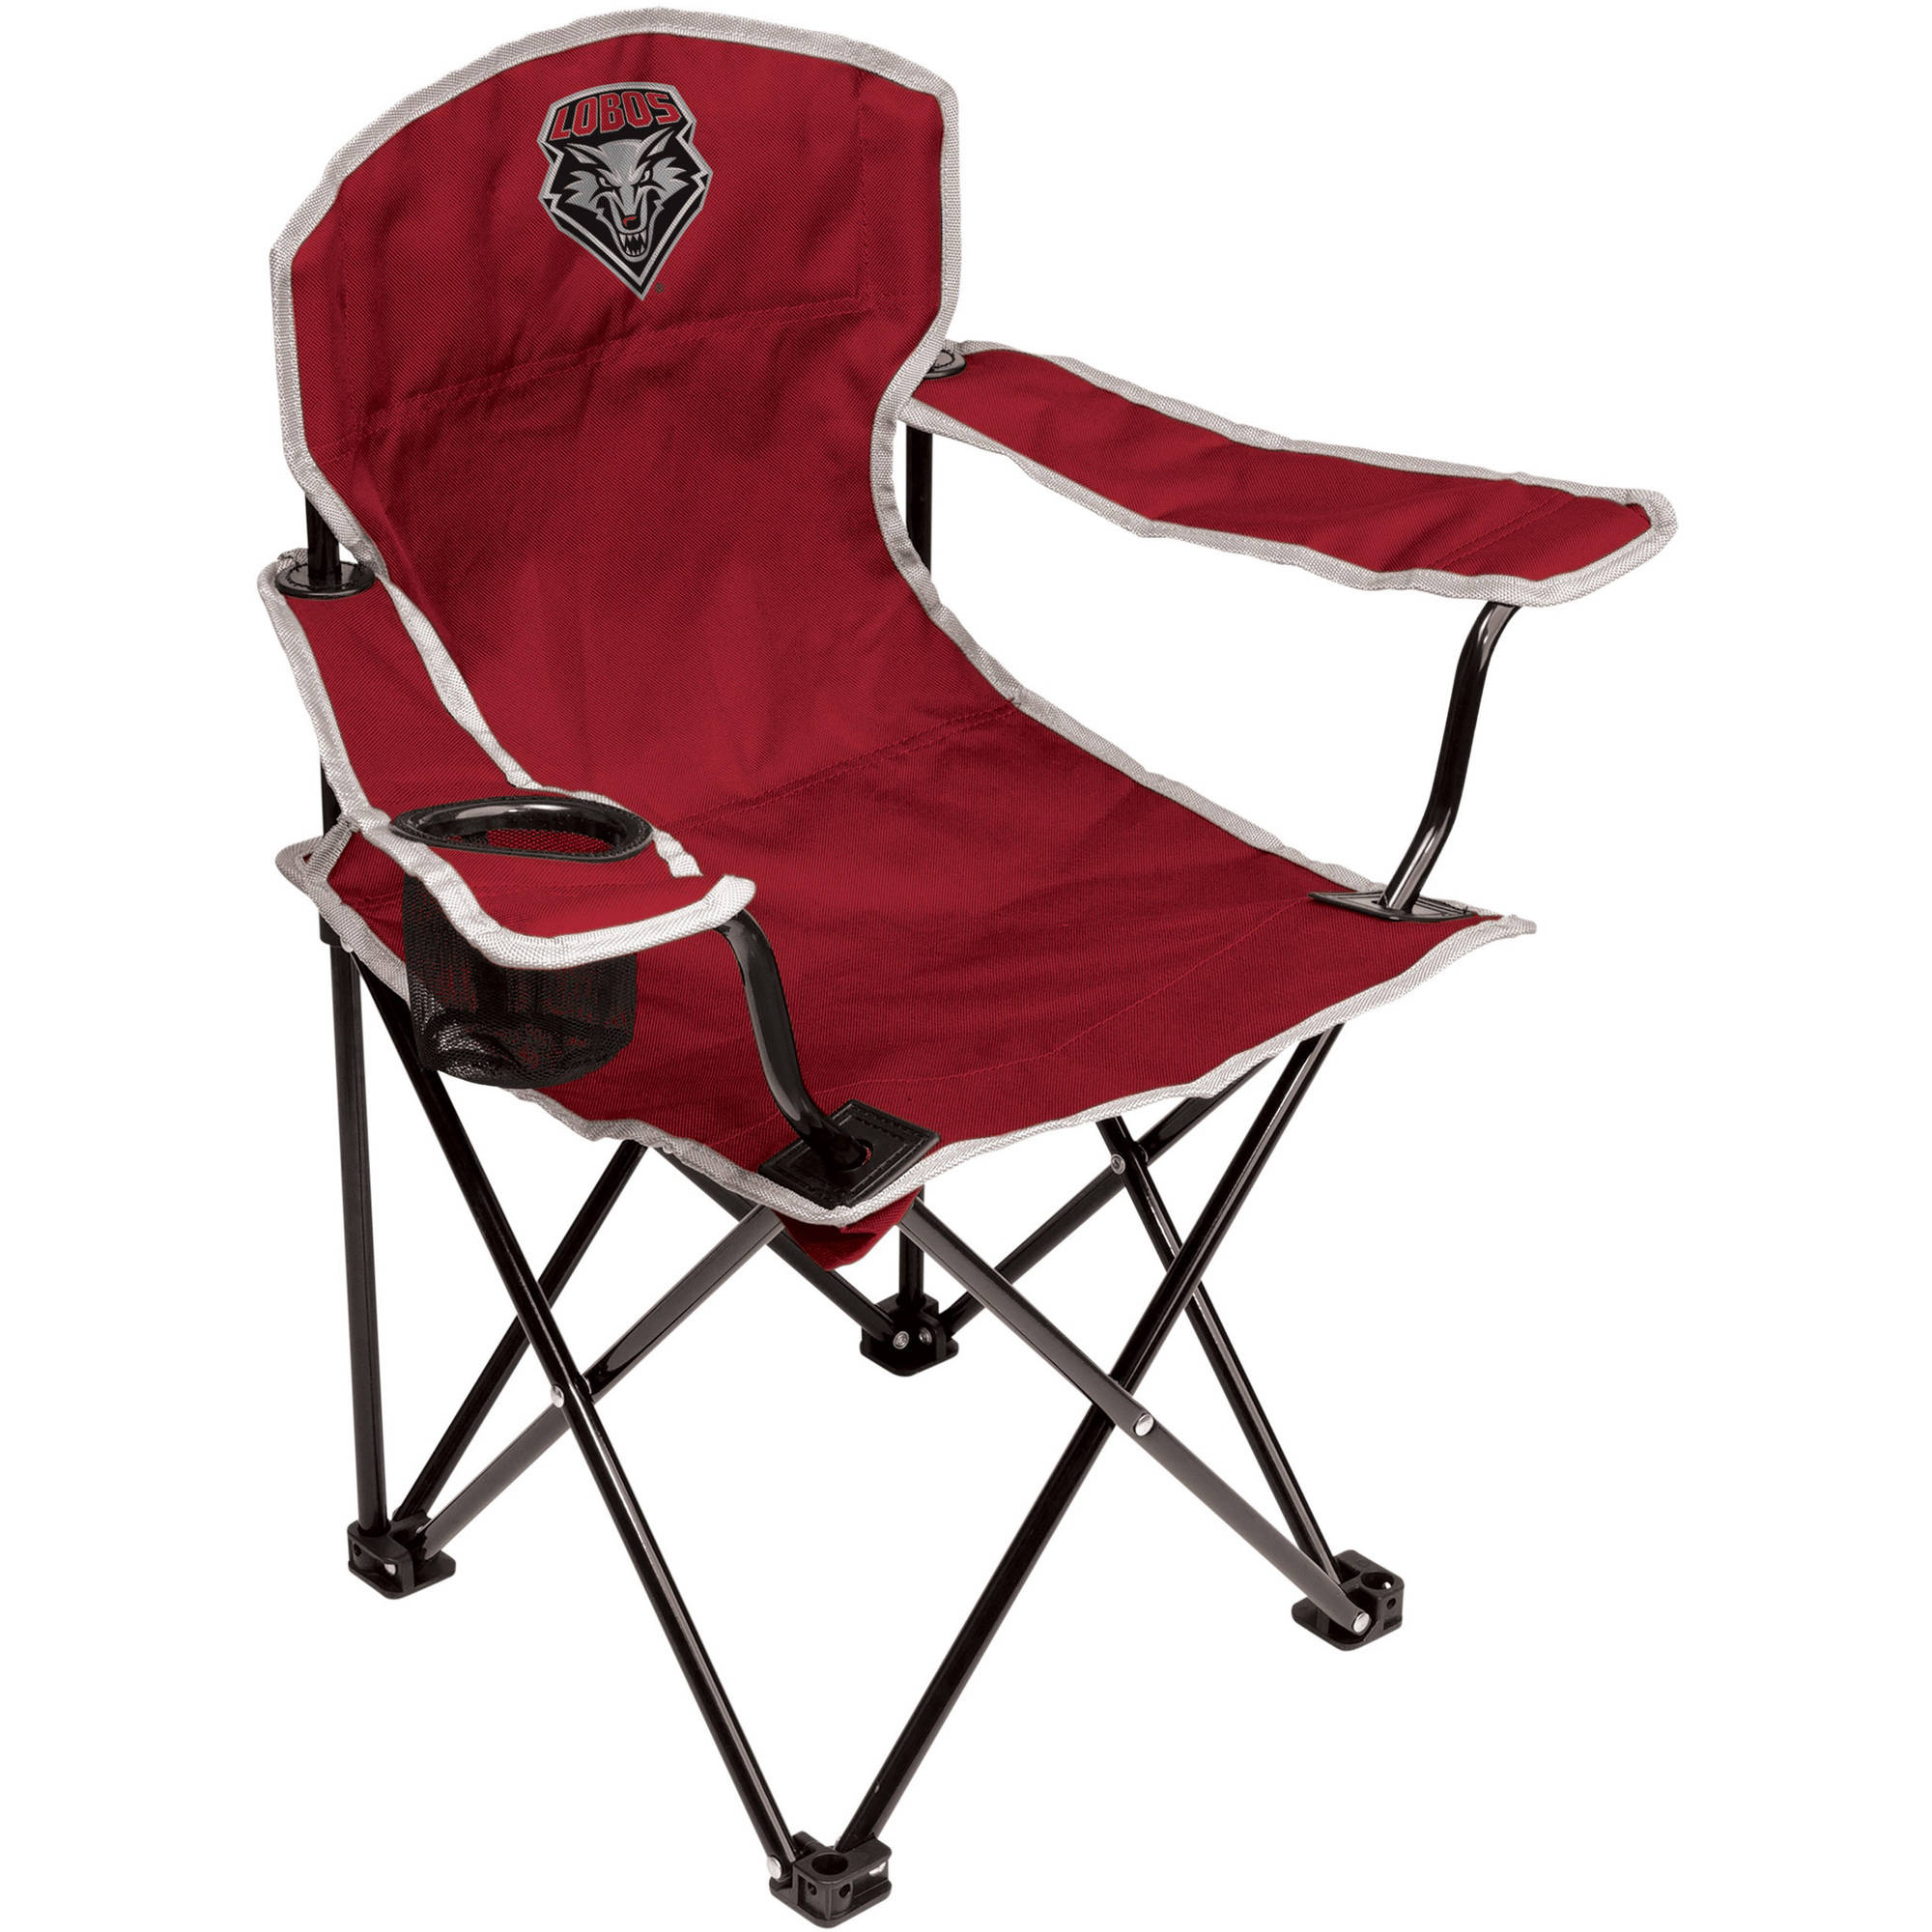 NCAA New Mexico Lobos Youth Size Tailgate Chair from Coleman by Rawlings